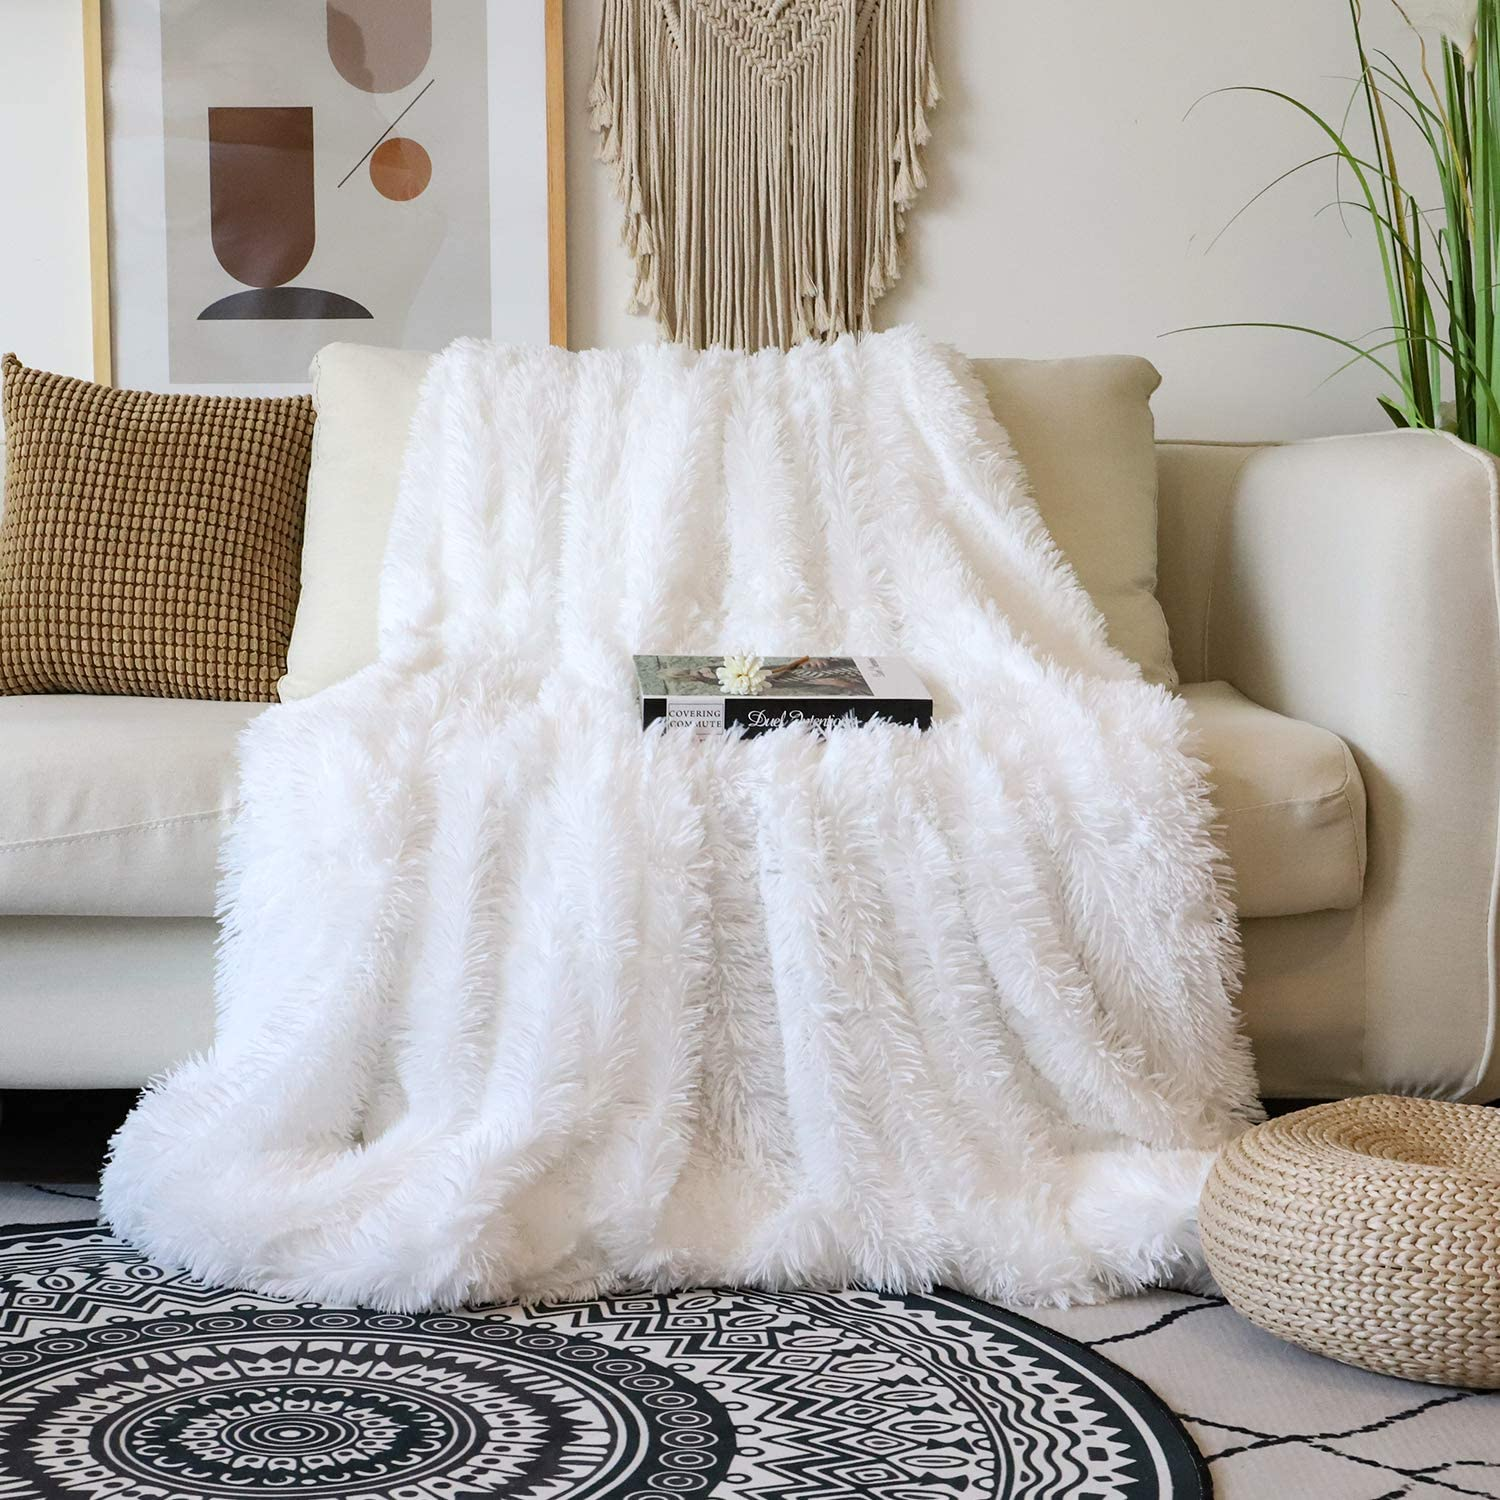 "Decorative Extra Soft Faux Fur Blanket Queen Size 78"" x 90"",Solid Reversible Fuzzy Lightweight Long Hair Shaggy Blanket,Fluffy Cozy Plush Fleece Comfy Microfiber Blanket for Couch Sofa Bed,Pure White"